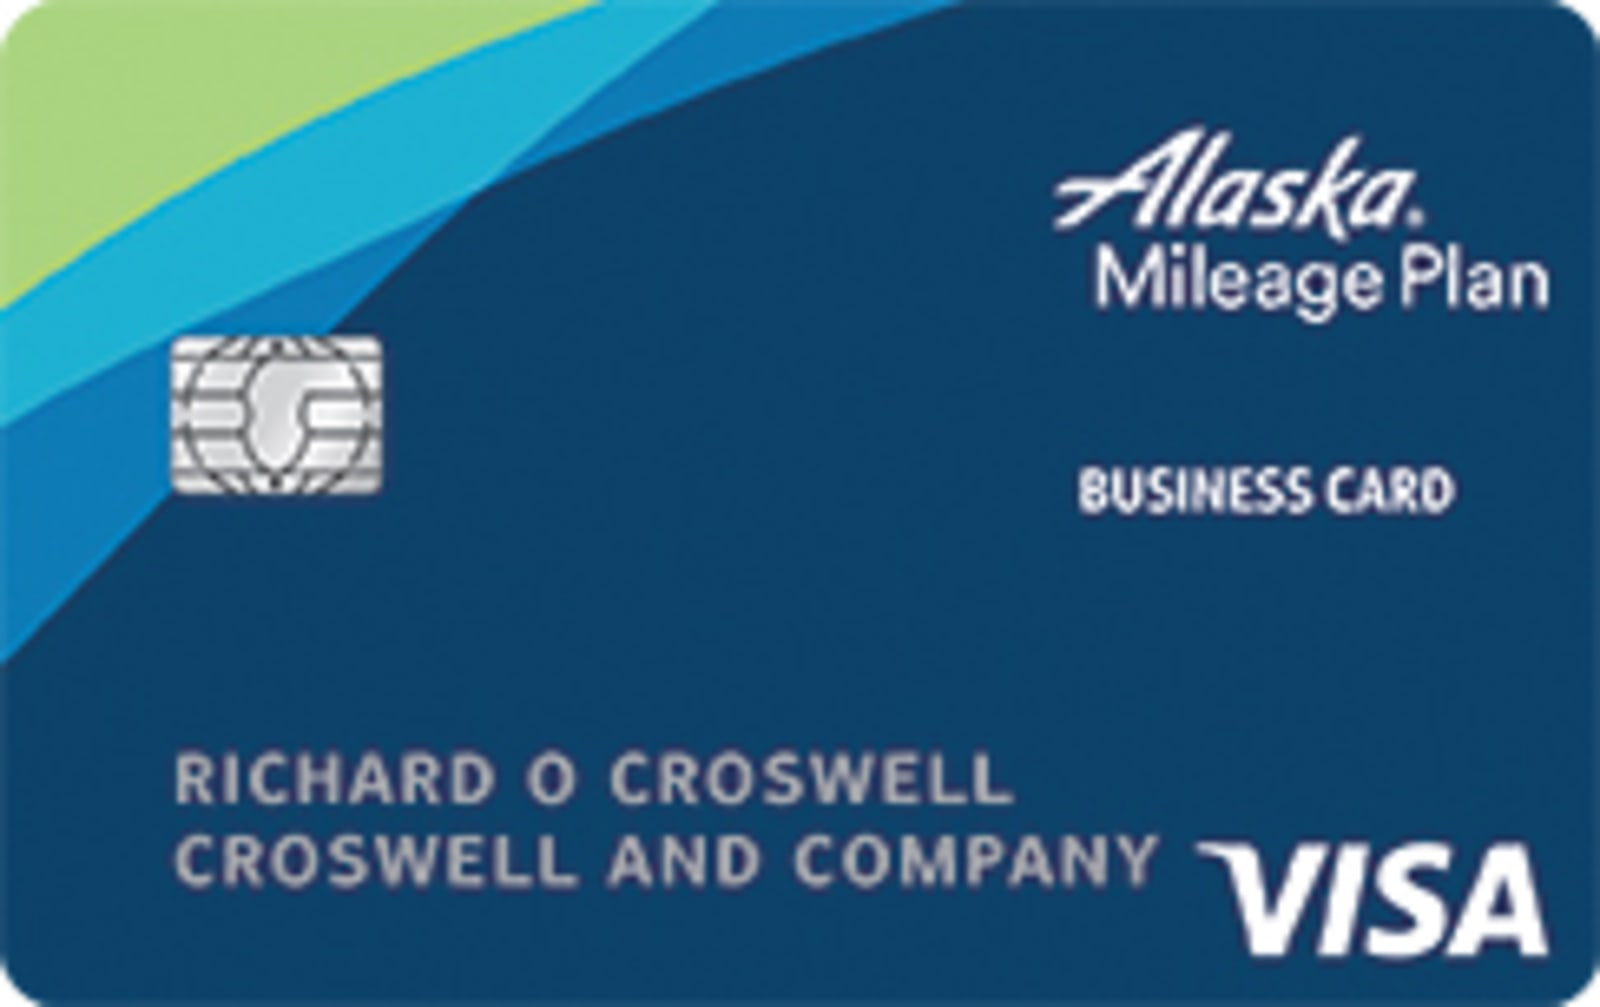 Best Business Credit Cards >> Alaska Airlines Visa Business Credit Card Review Is It The Best